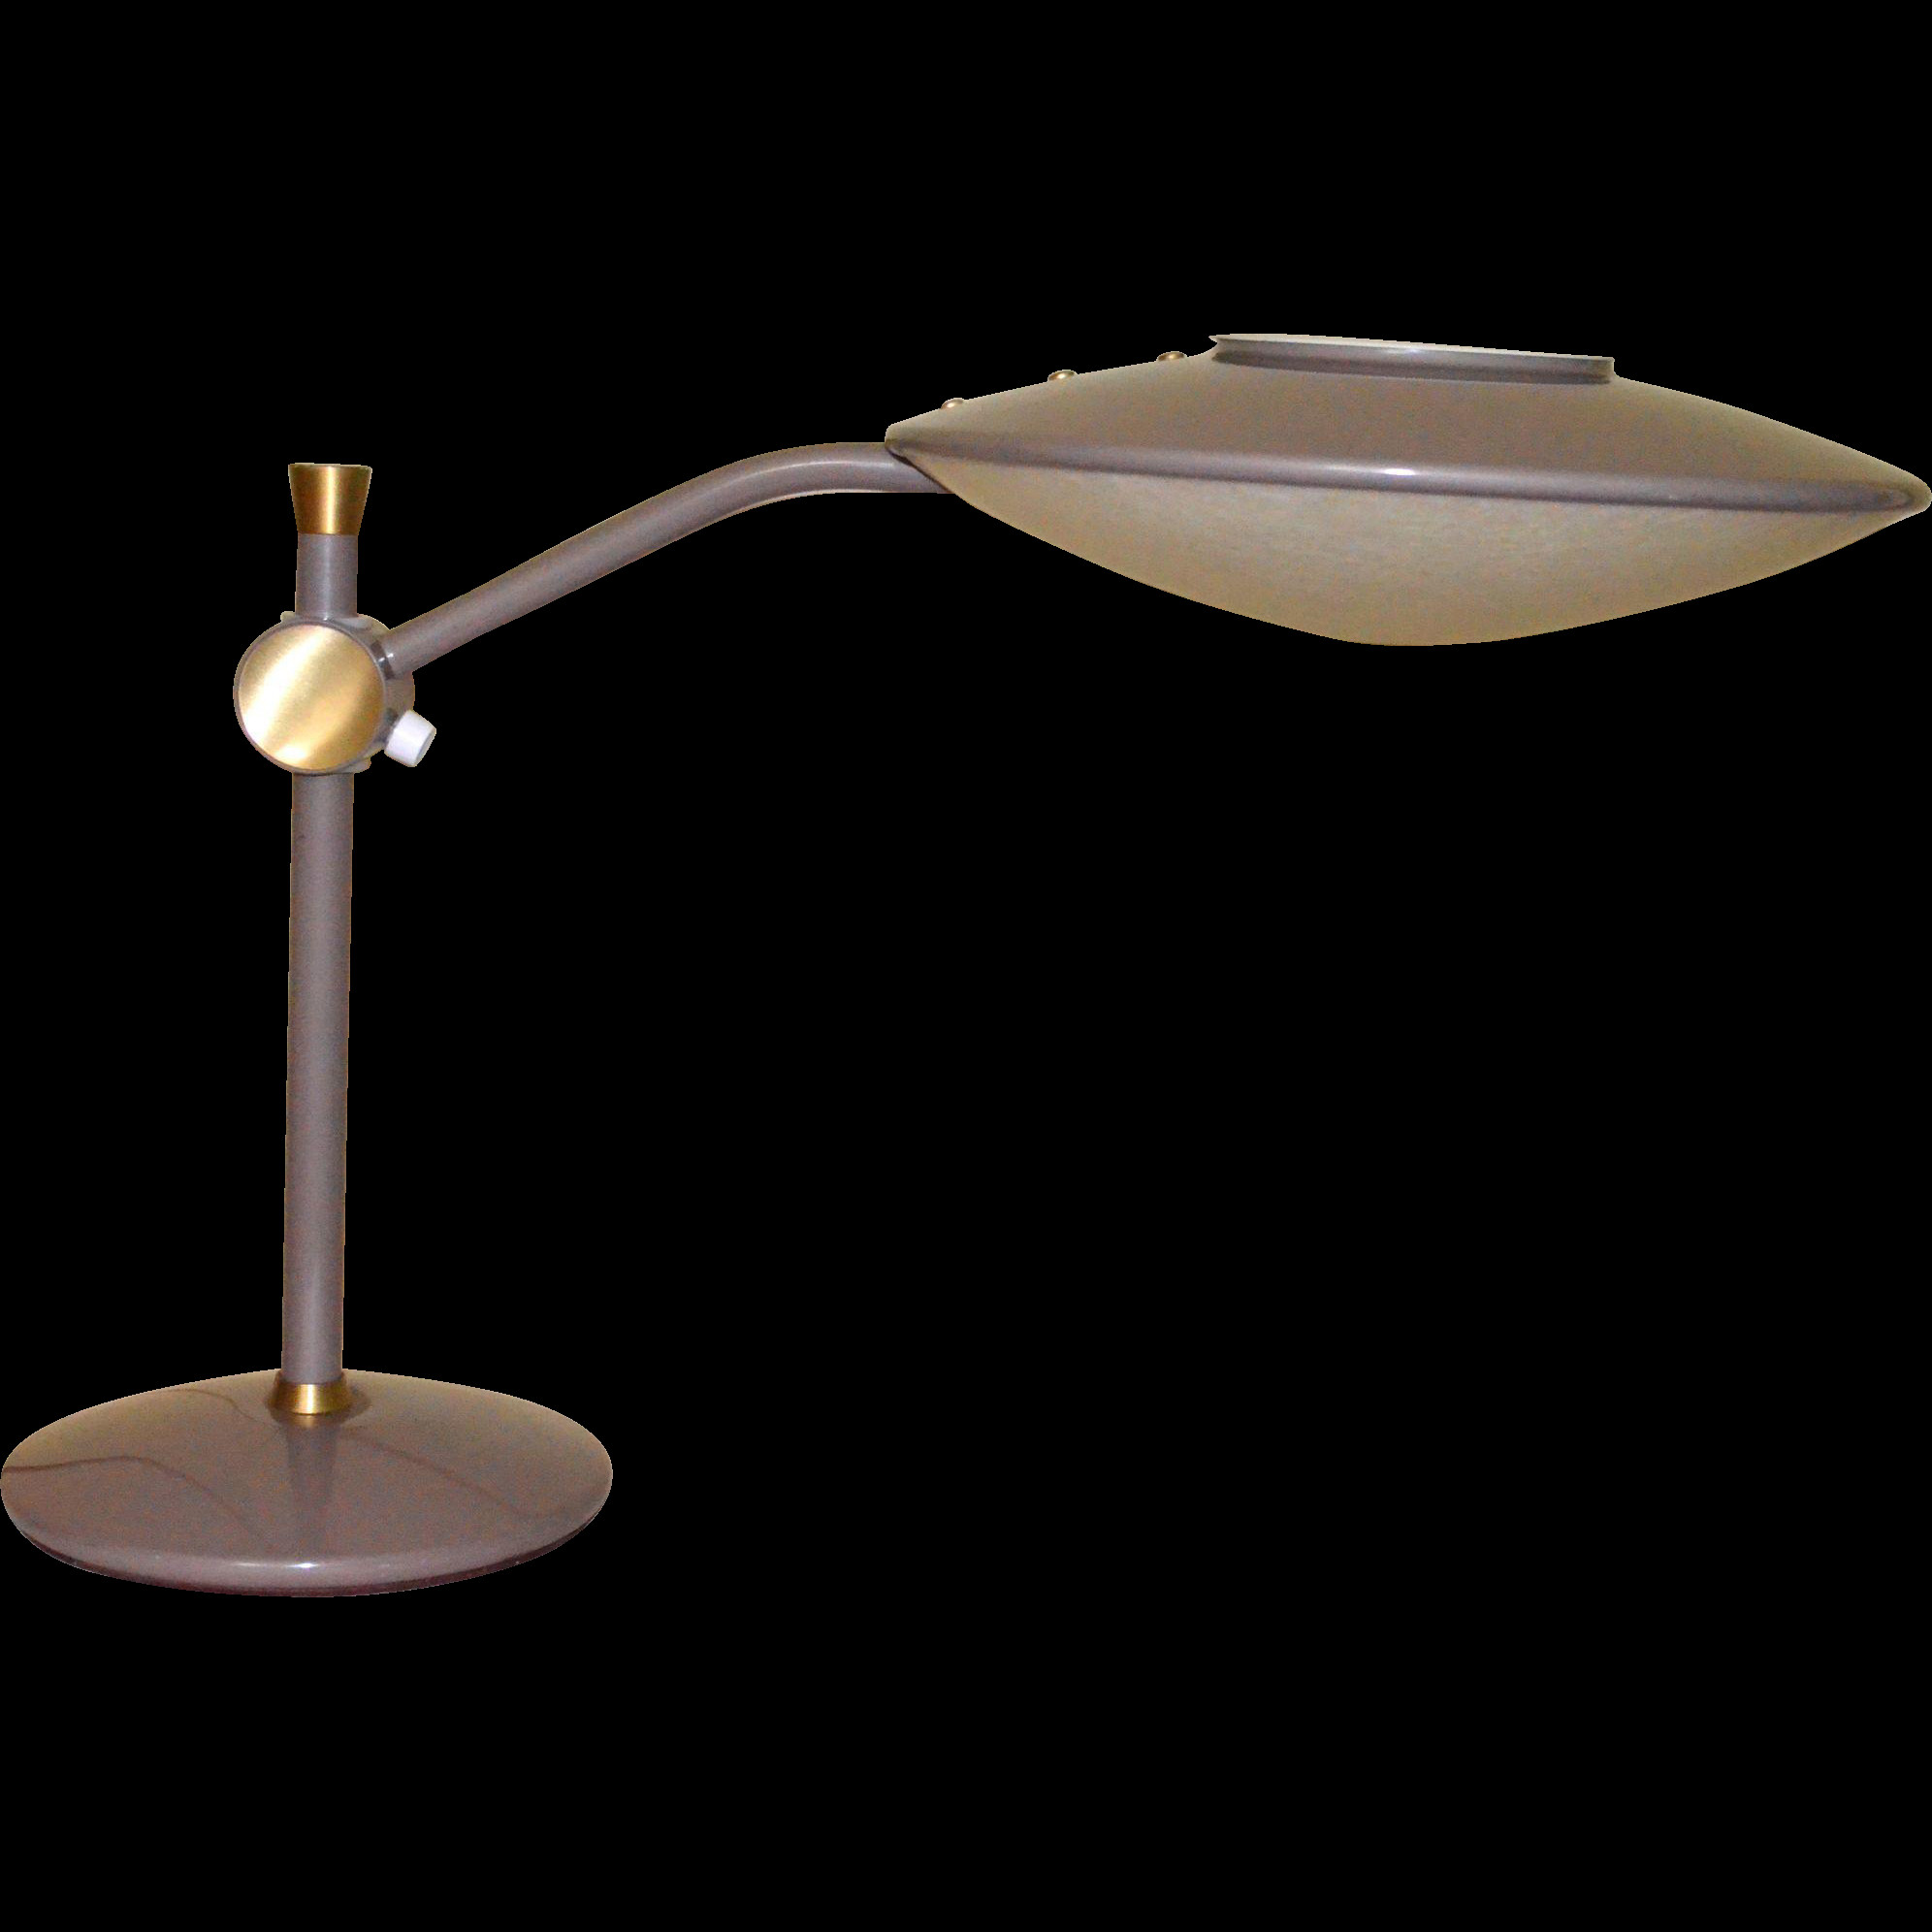 Best ideas about Modern Desk Lamp . Save or Pin Dazor Model 2008 Mid Century Modern Desk Lamp from Now.